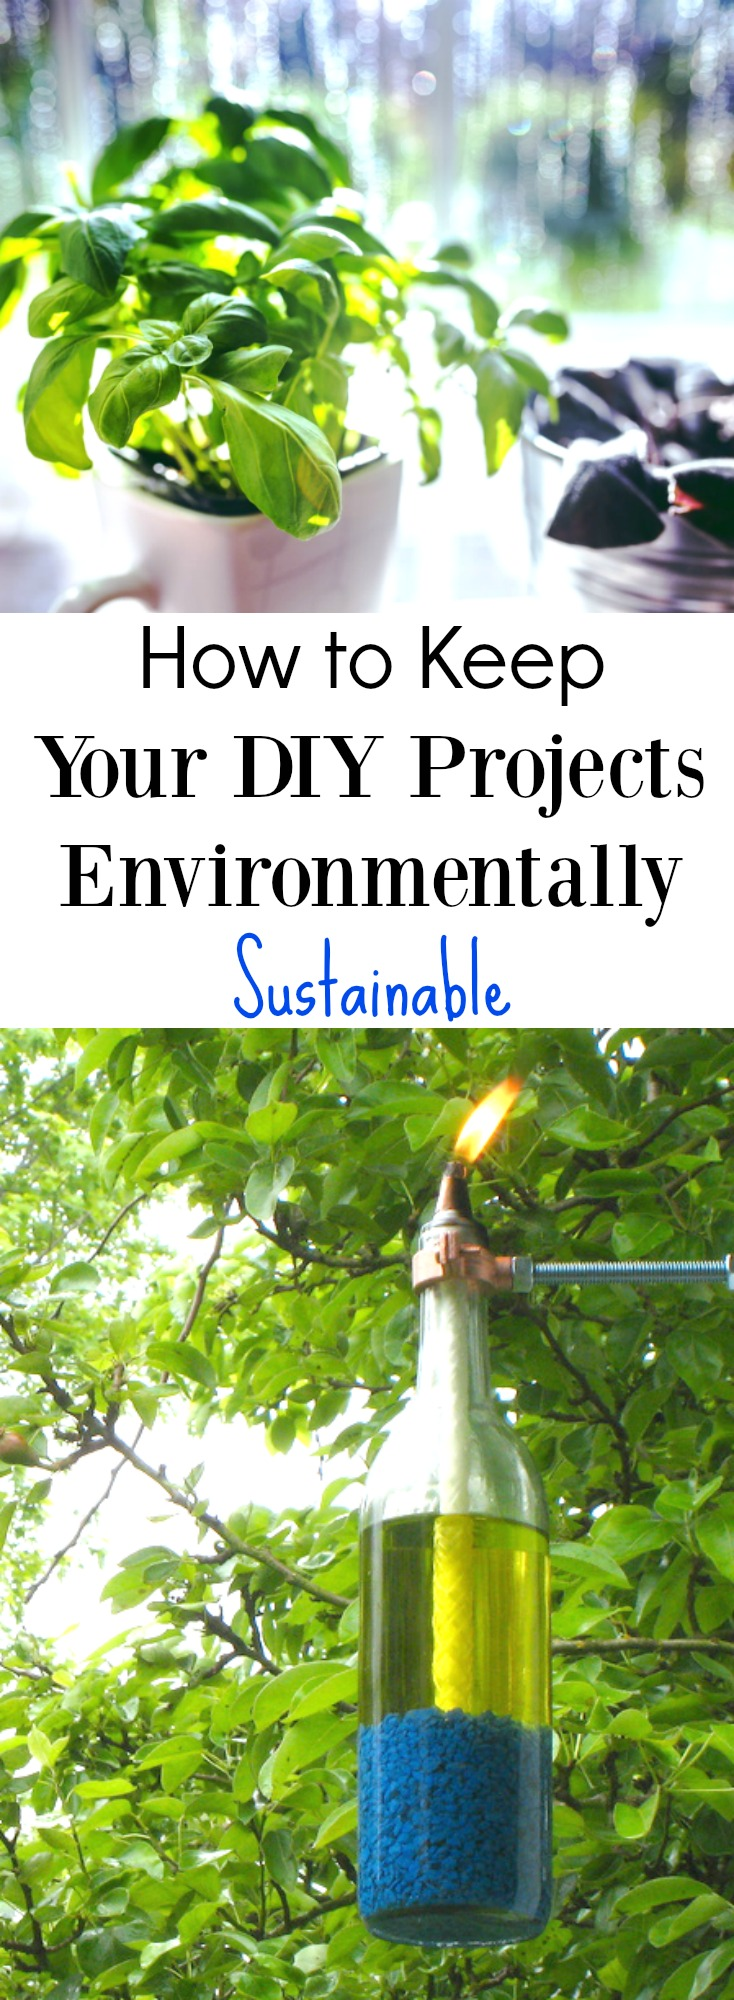 How to Keep Your DIY Projects Environmentally Sustainable on chemistrycachet.com